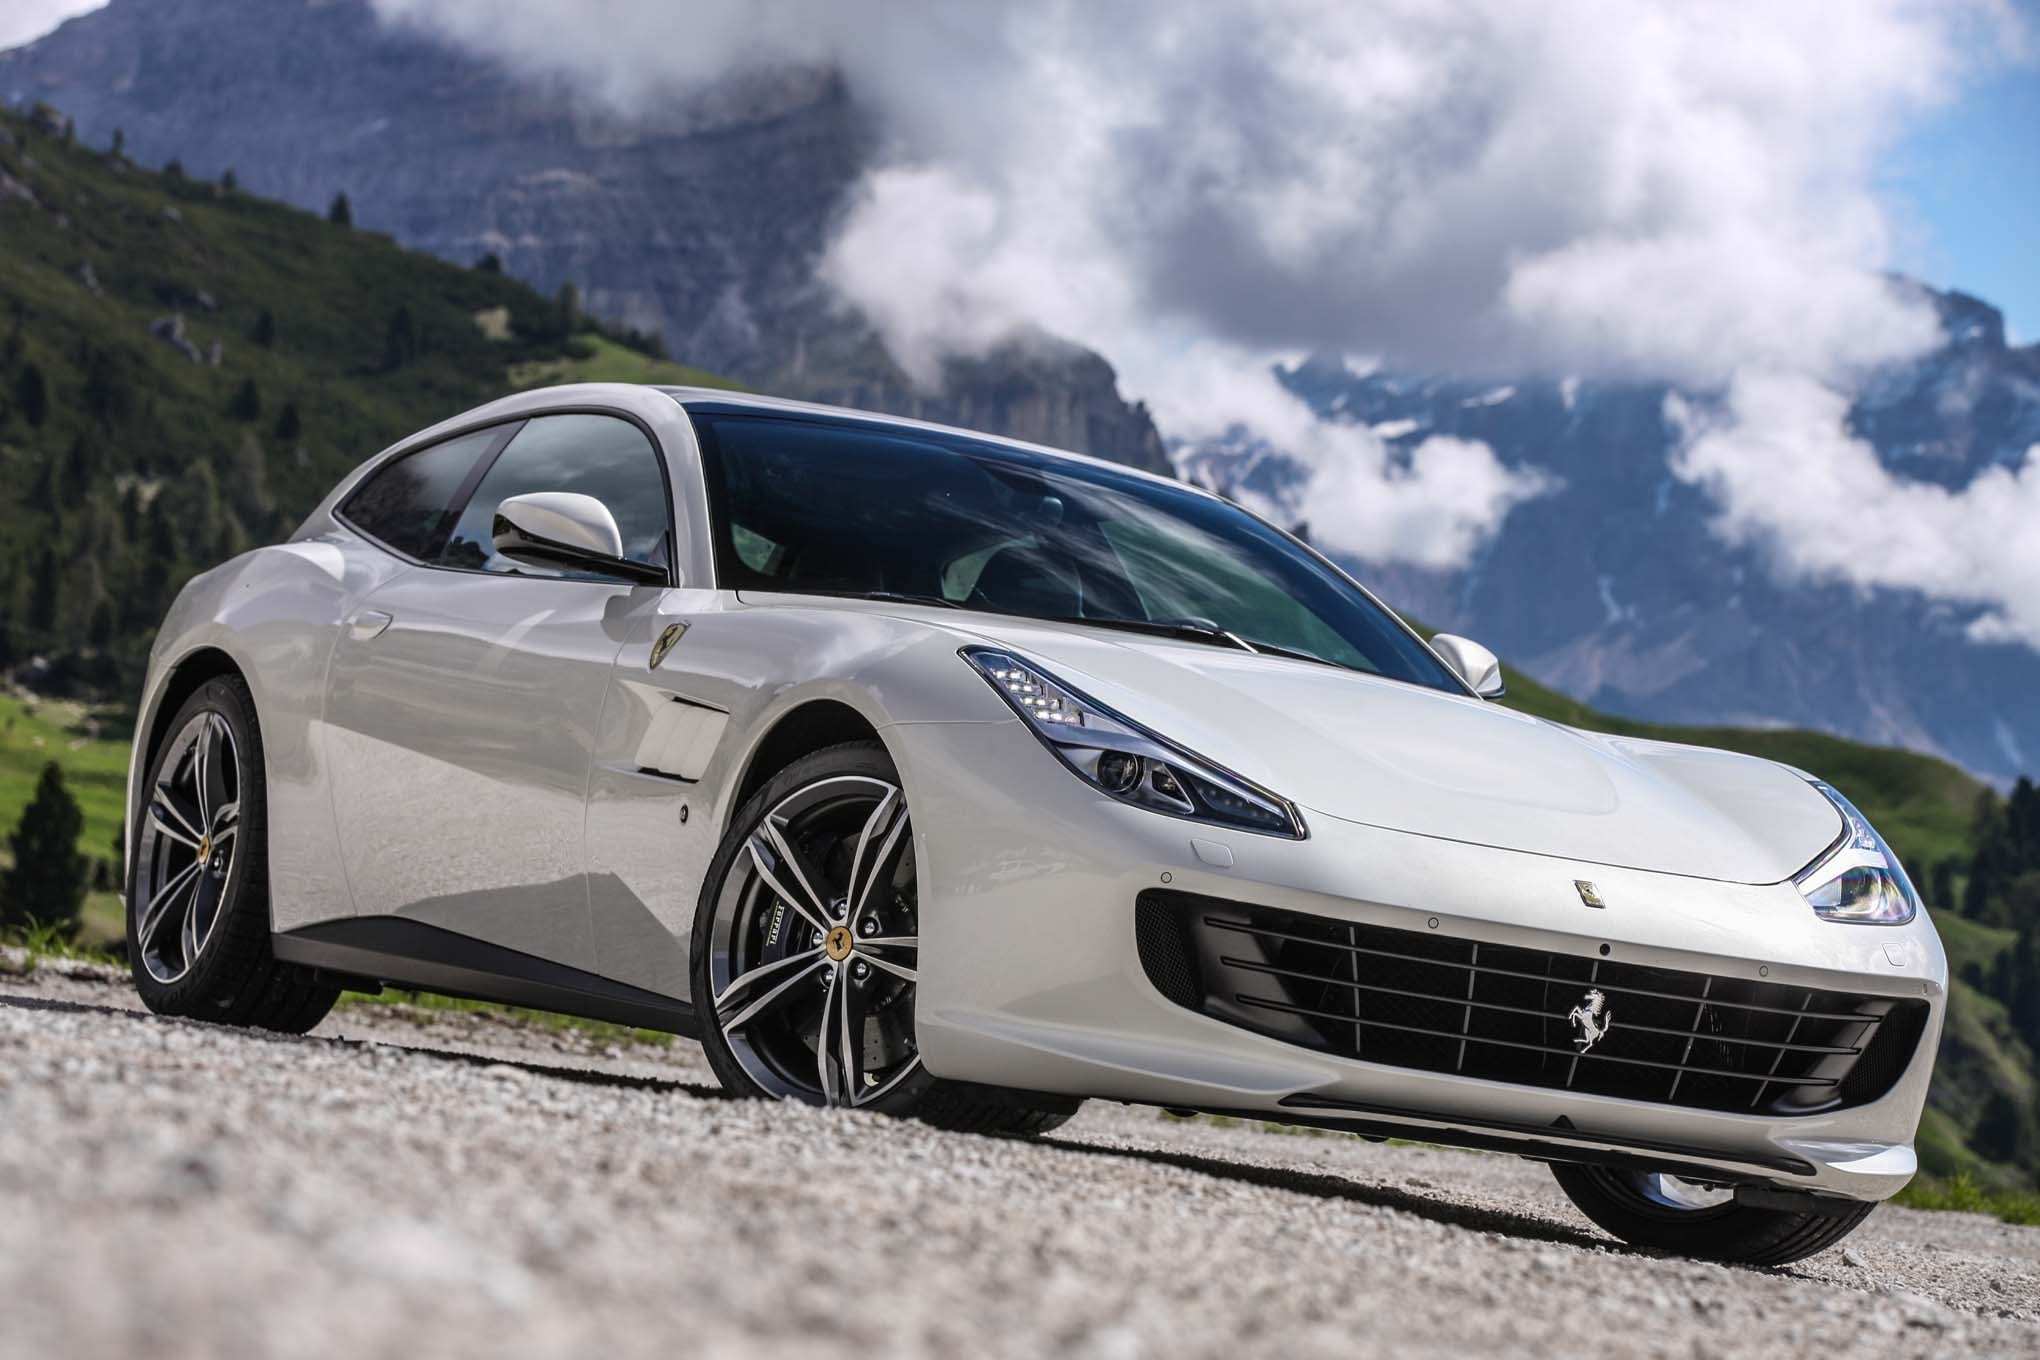 Latest 2017 Ferrari Gtc4Lusso Reviews Research Gtc4Lusso Prices Free Download